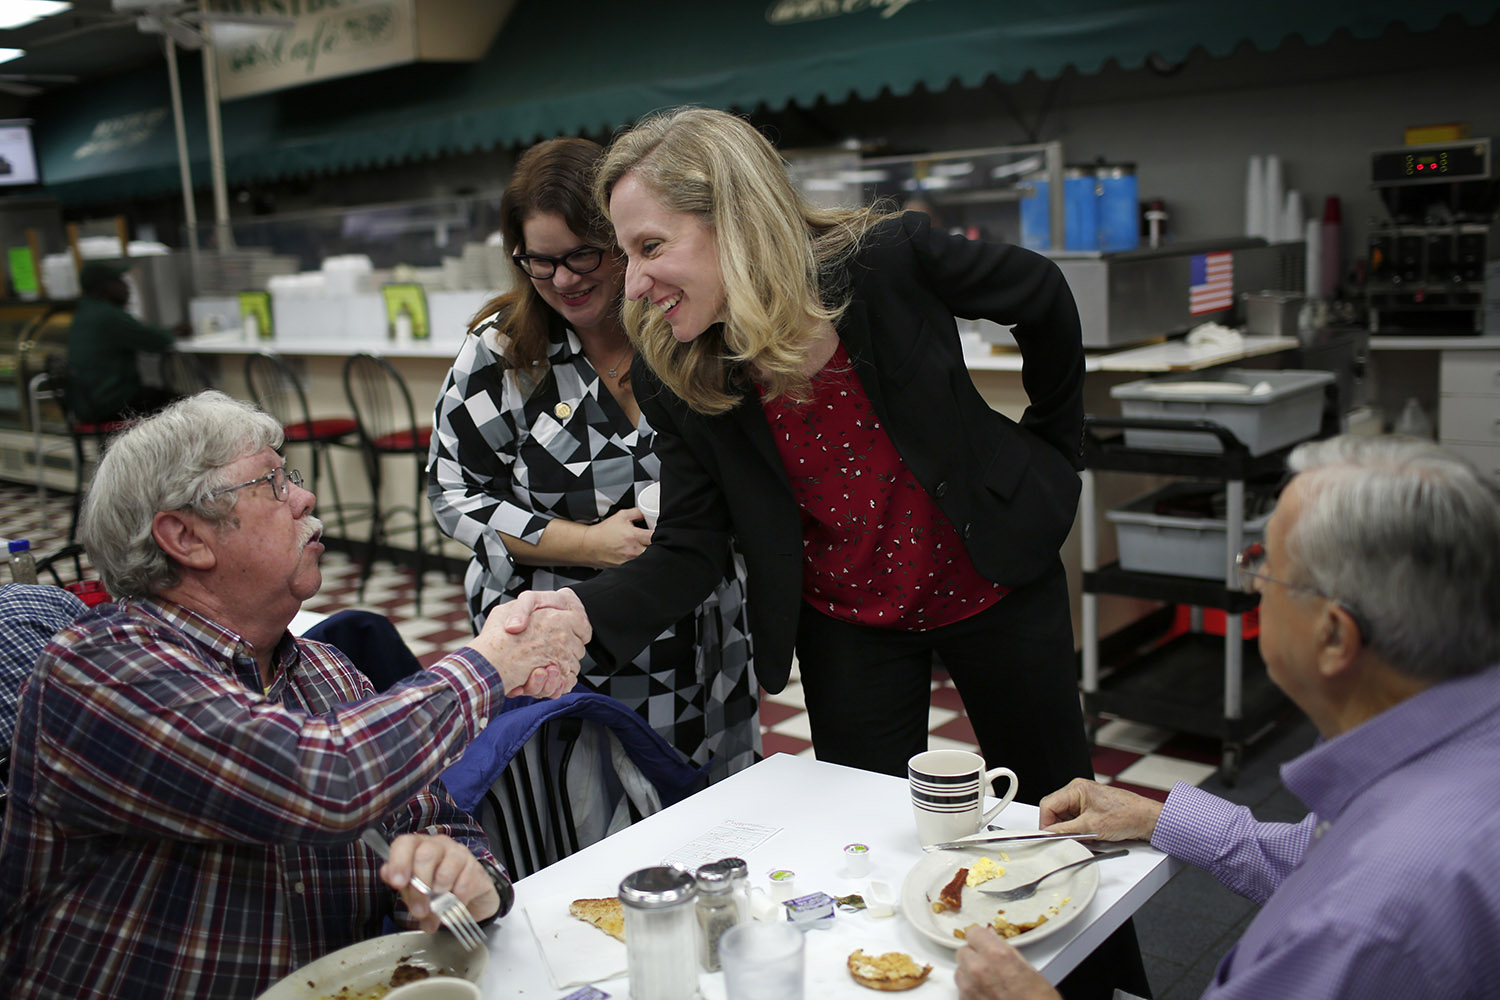 Abigail Spanberger, Democratic candidate for Virginia's Seventh District in the U.S. House of Representatives, greets breakfast diners at Westbury Apothecary's cafe, November 5, 2018 in Richmond, Virginia. Spanberger, a former CIA officer and first time candidate, is running against Rep. Dave Brat (R-VA) in a race that is expected to be very close as the U.S. holds its midterm elections tomorrow. (Photo by Win McNamee/Getty Images)